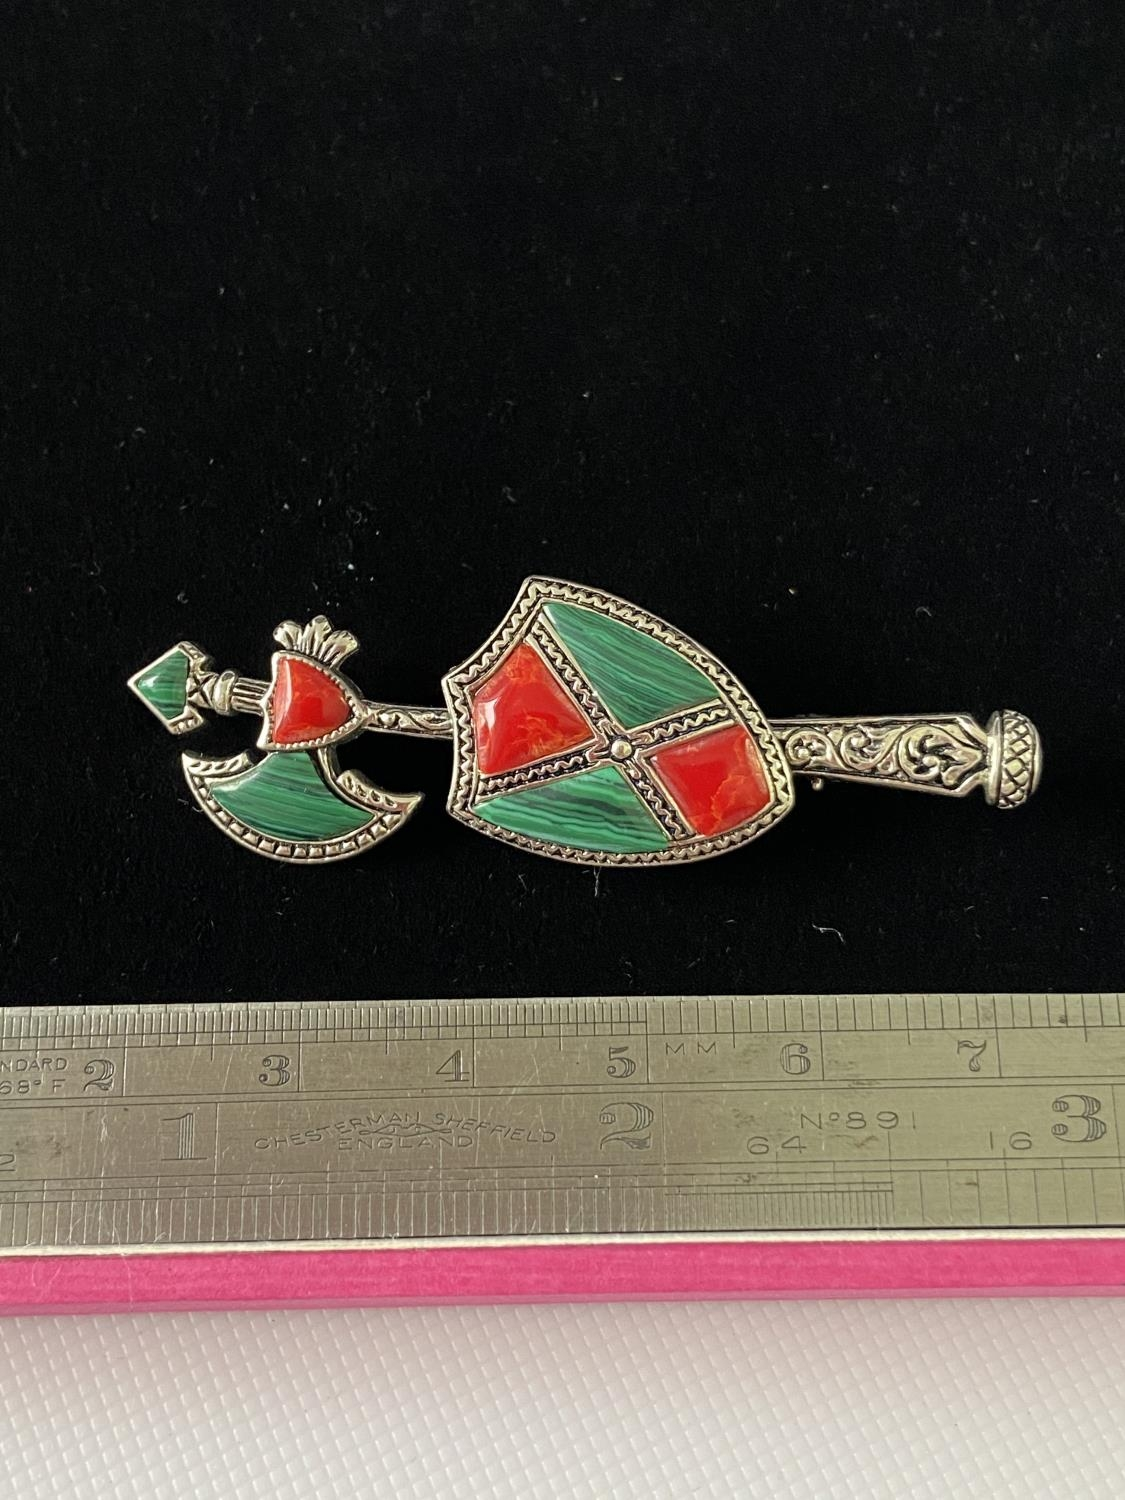 A Silver and malachite arrow shaped brooch. [5.3cm in length] - Image 3 of 6